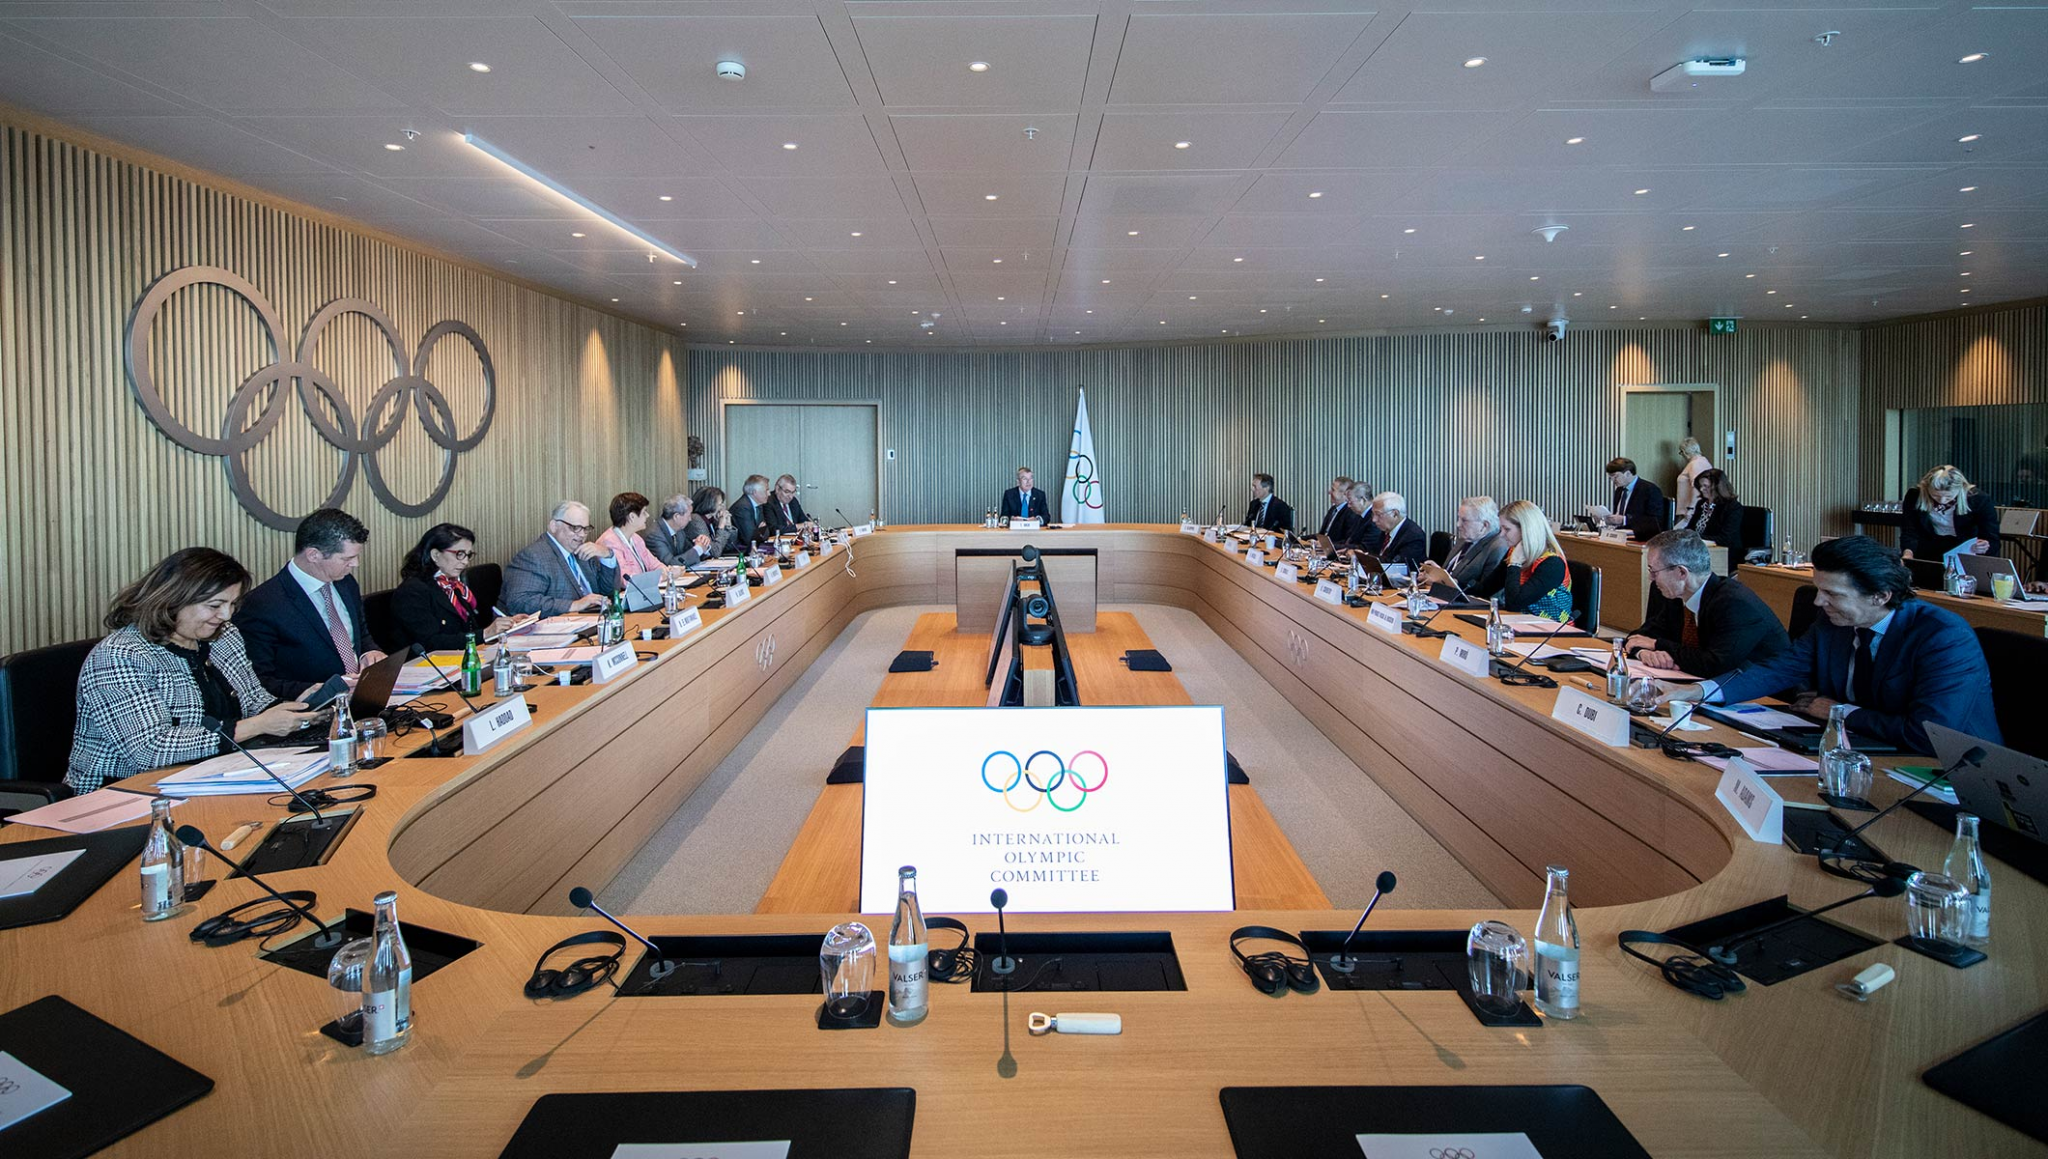 The IOC Executive Board confirmed the existing consensus statement will remain in place ©IOC